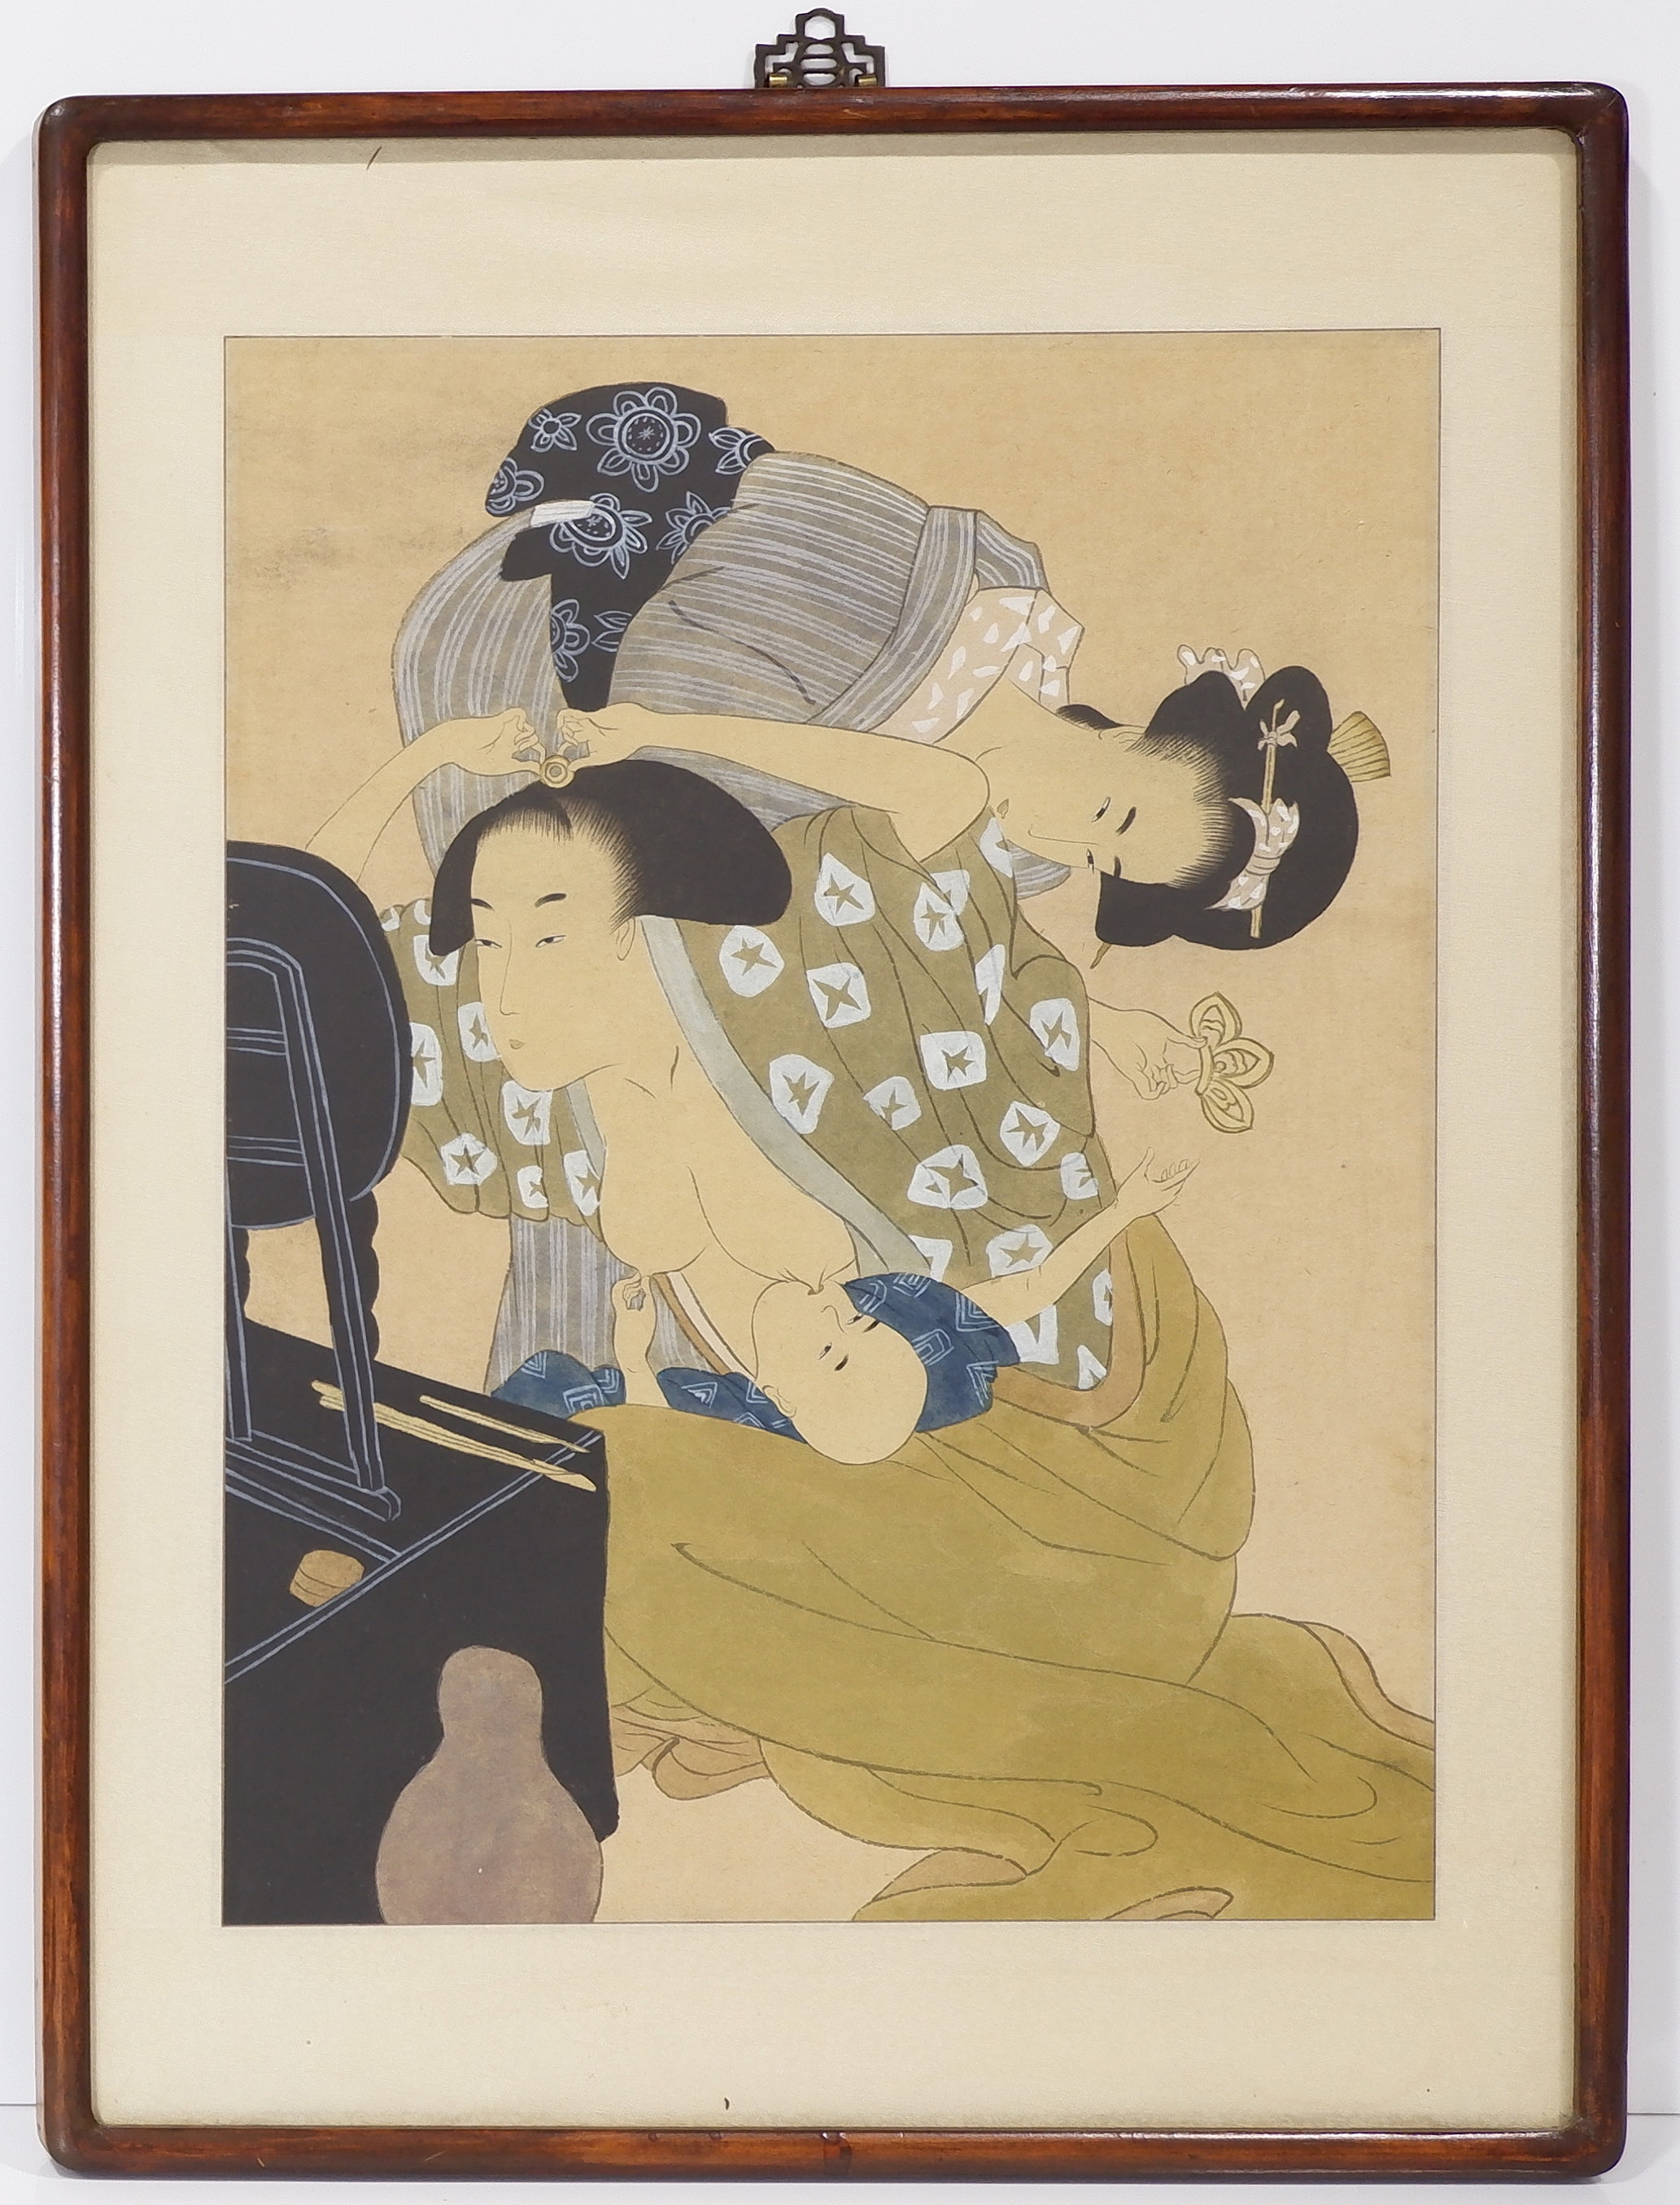 'Early Well Framed Original Japanese Woodblock Print'